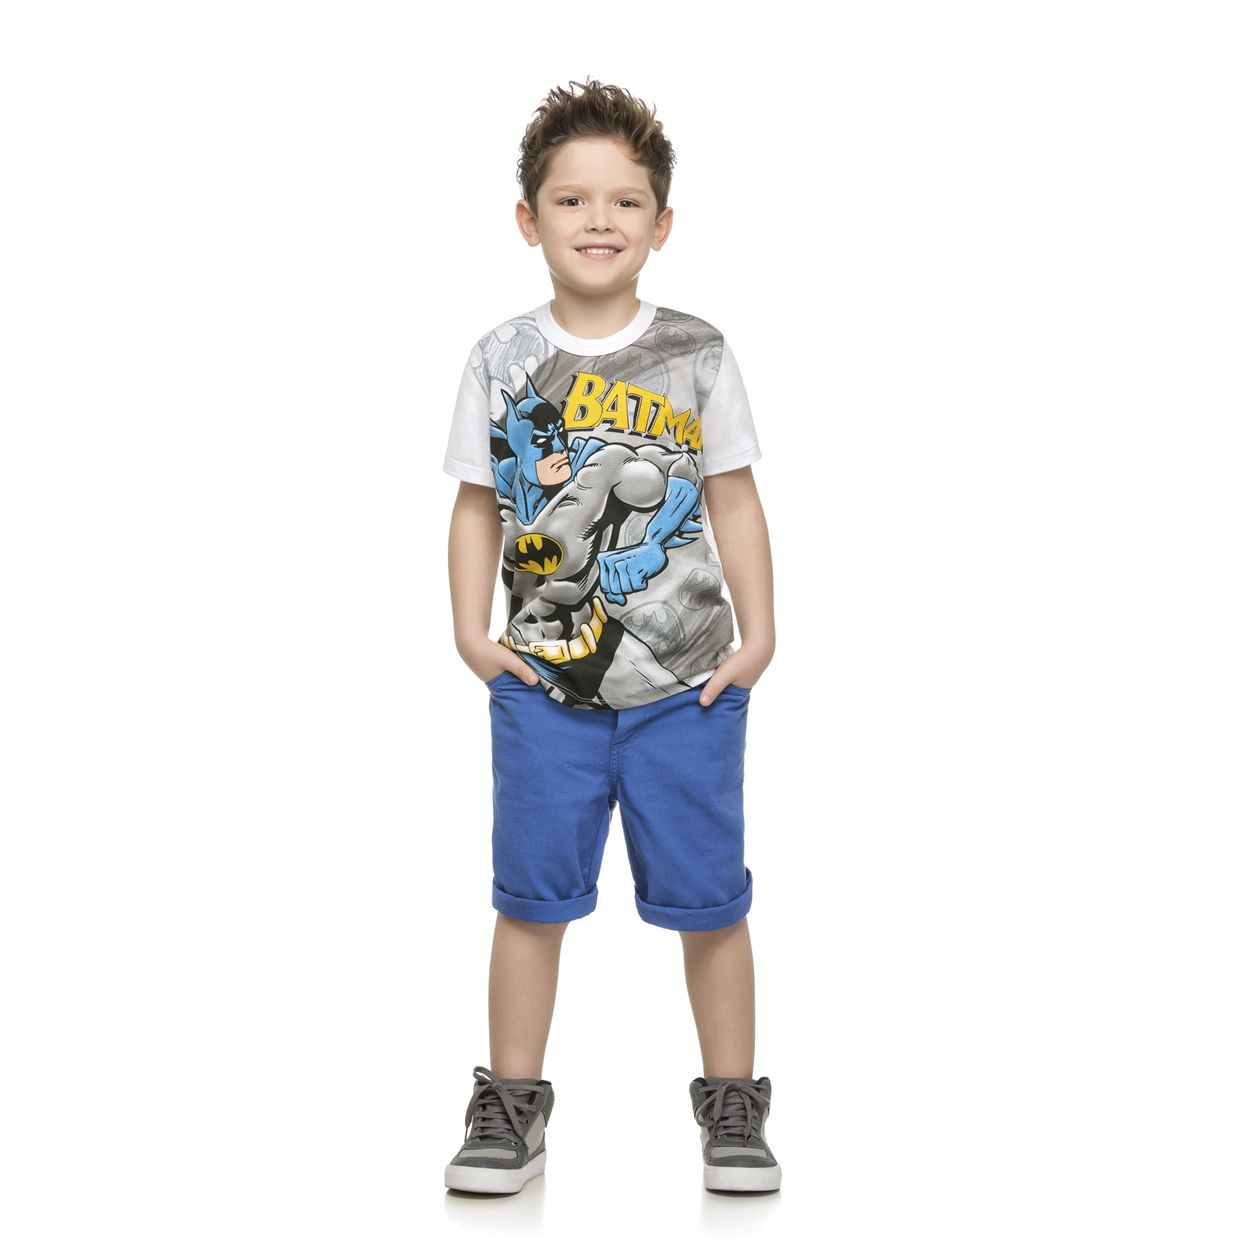 Camiseta infantil do Batman REF.82006